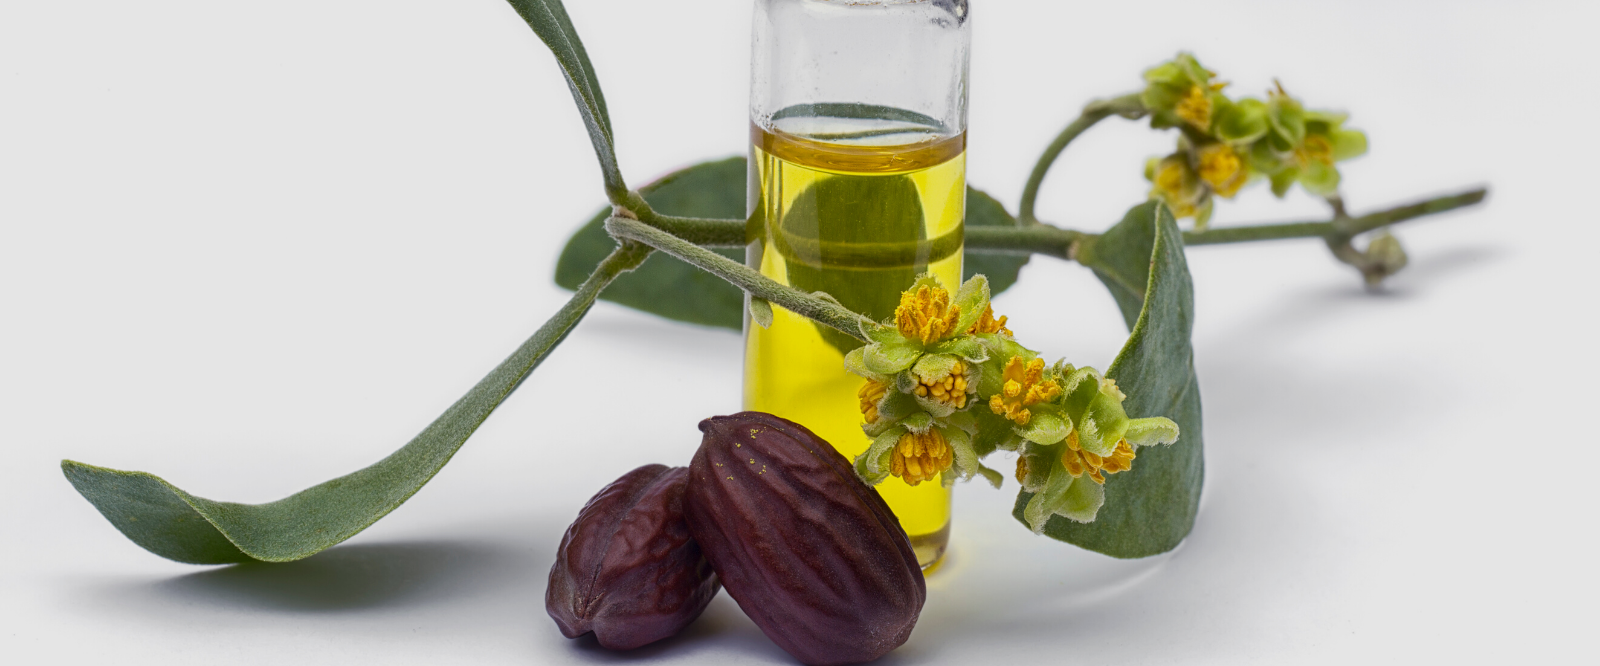 jojoba oil with seeds for use in holistic skincare